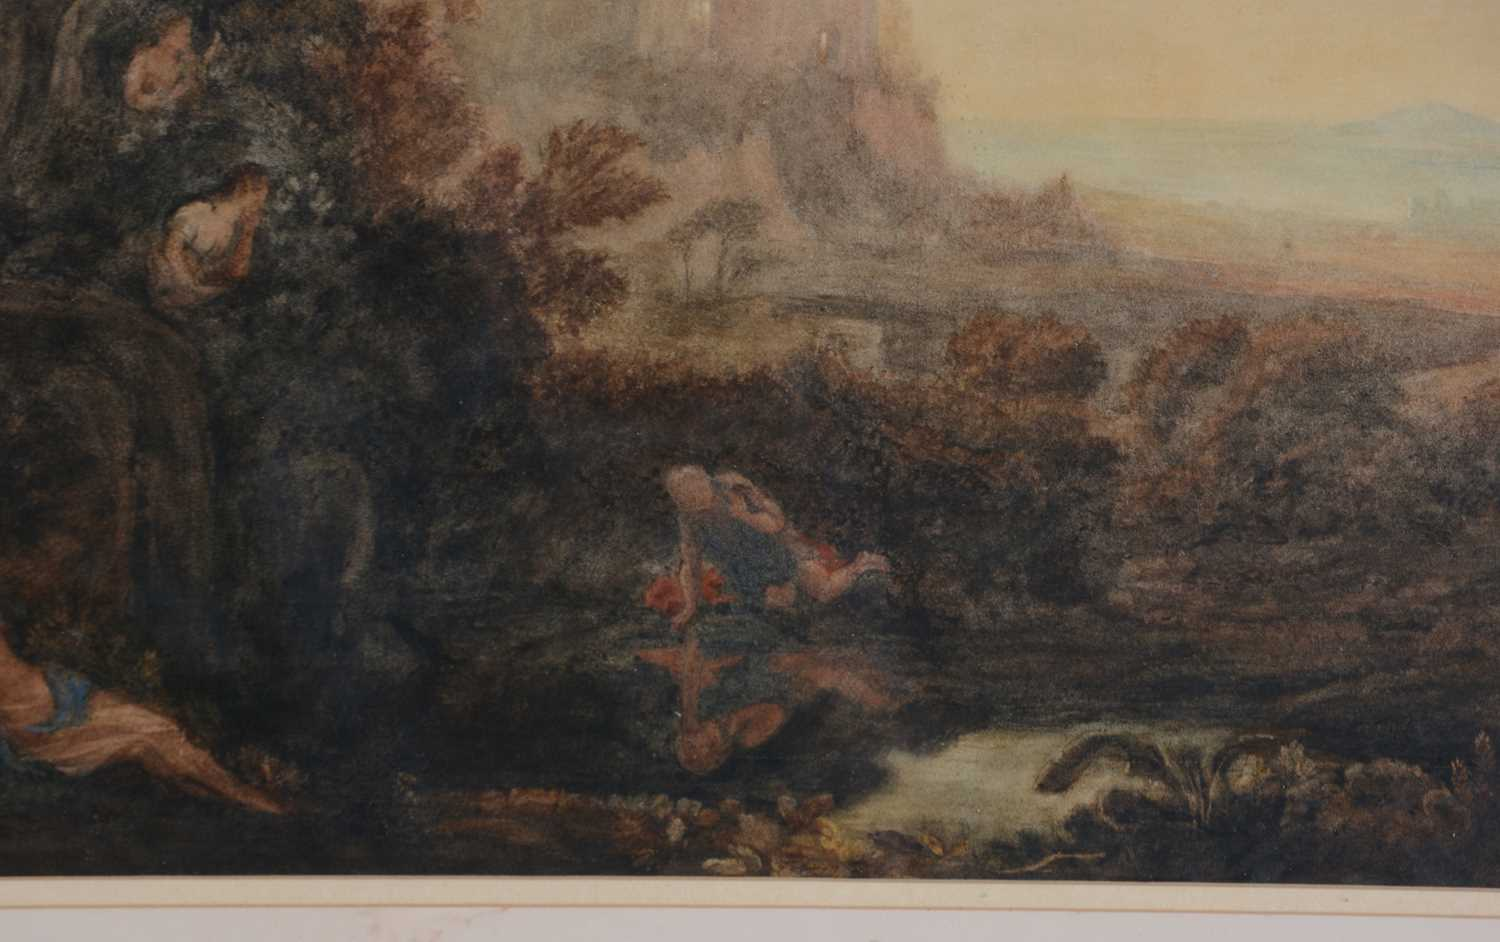 Attributed to Joseph Mallord William Turner, RA - watercolour - Image 5 of 11